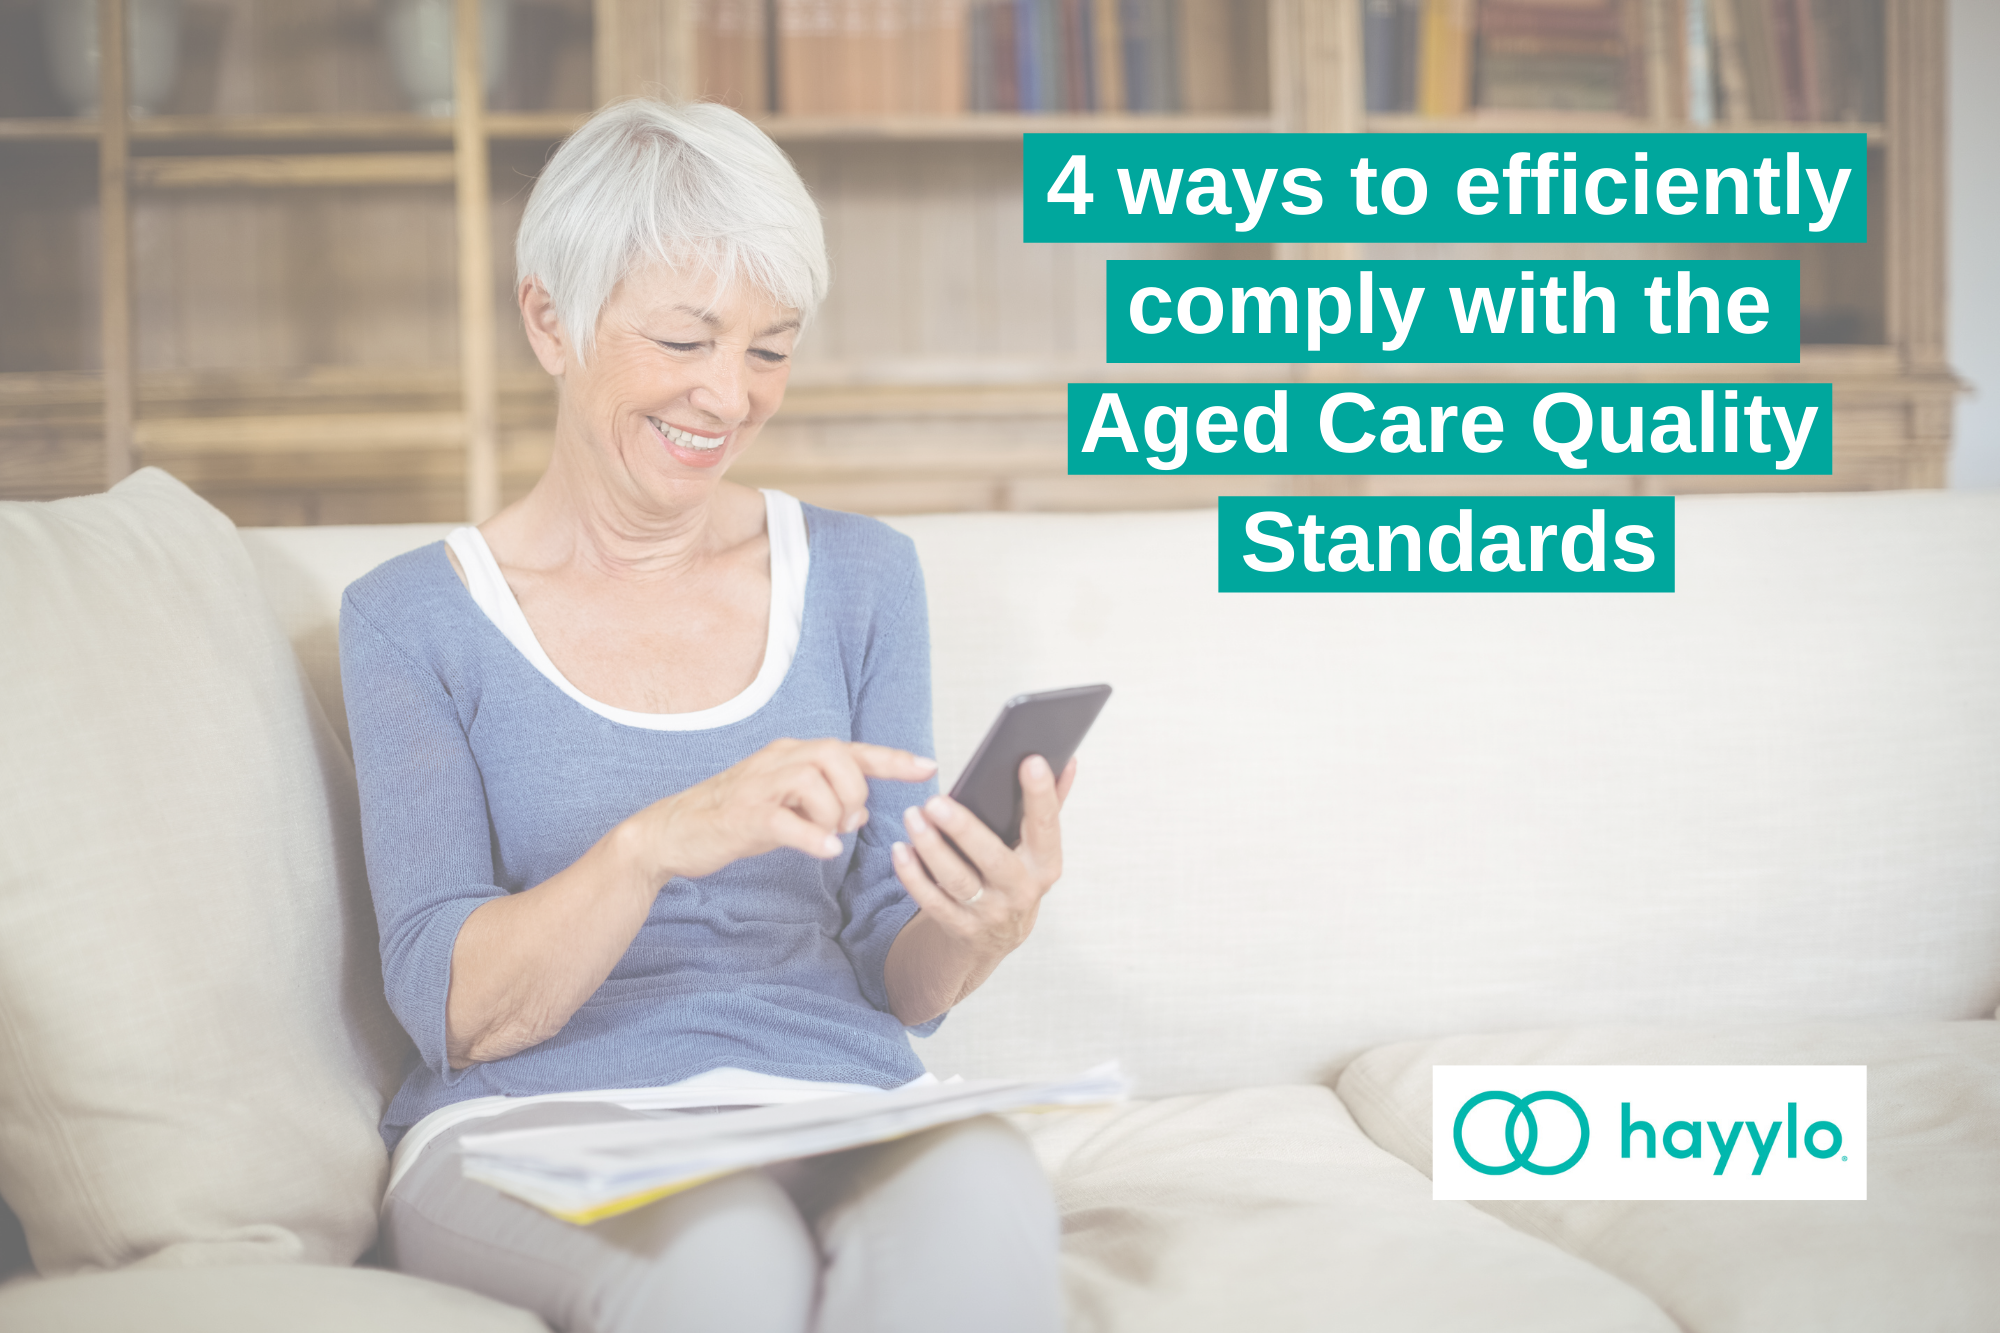 4 ways to comply with the aged care quality standards